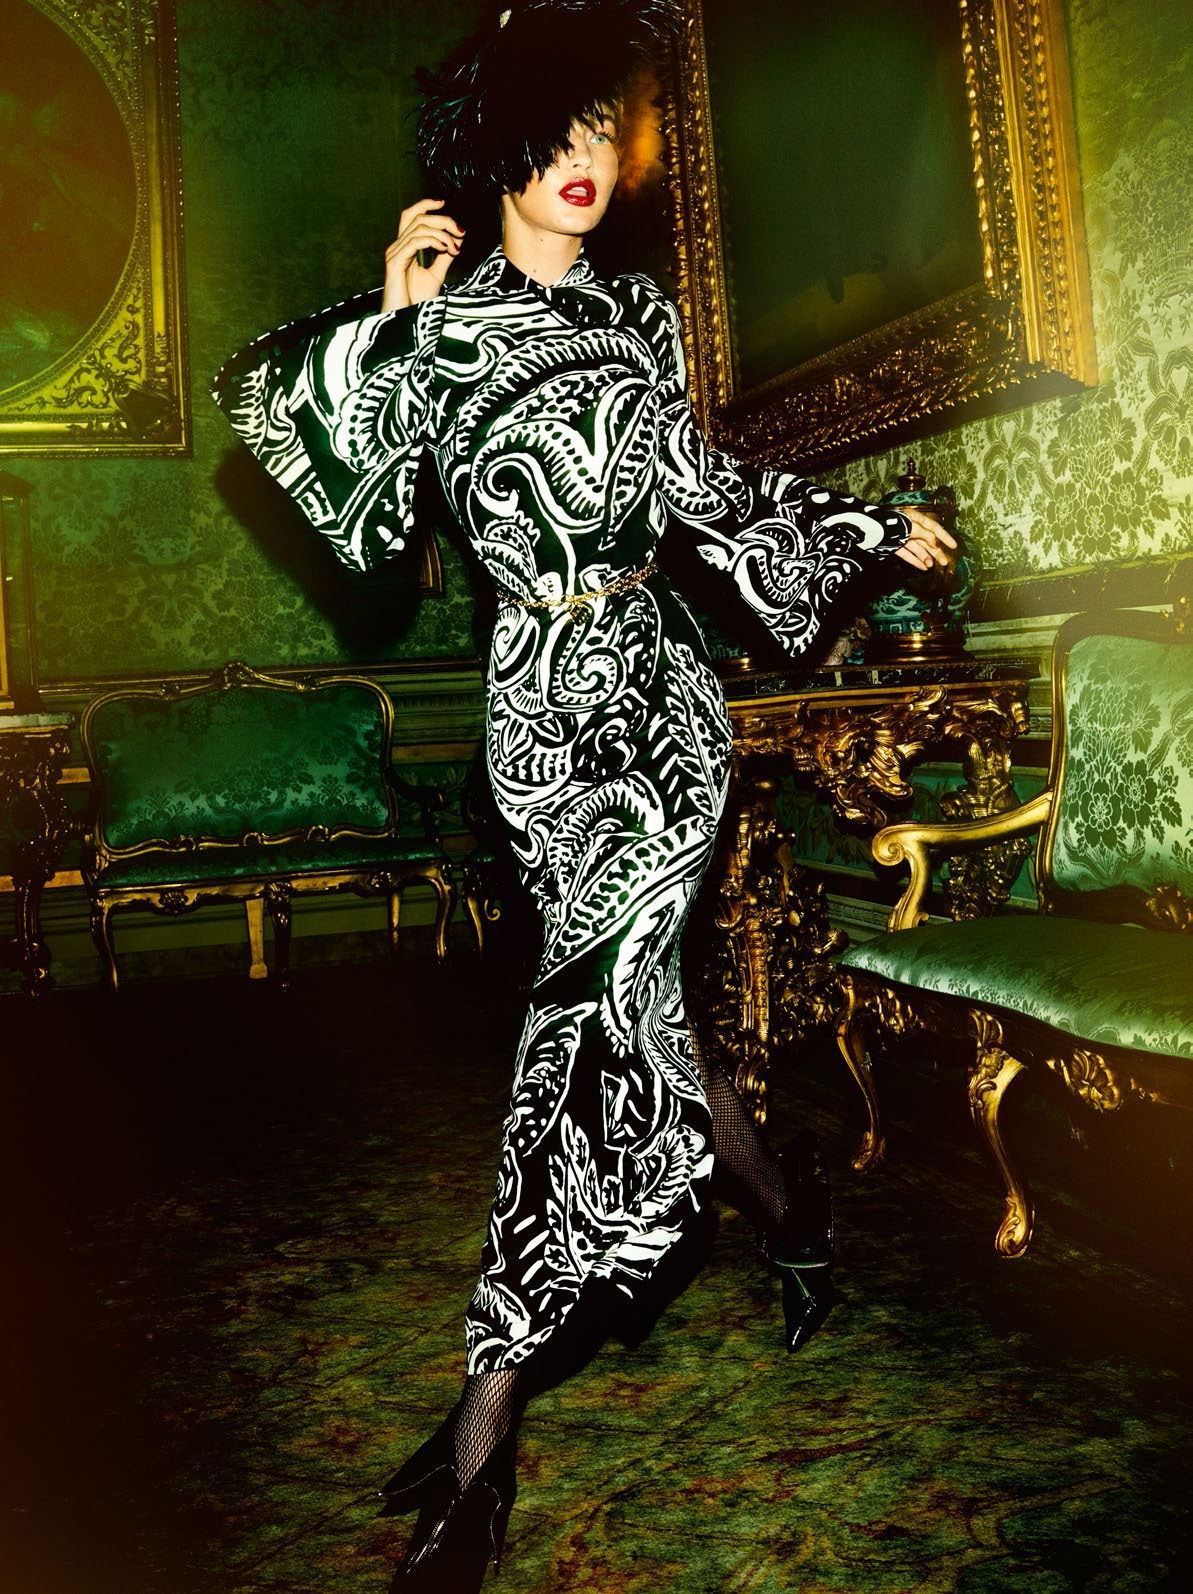 gigi-hadid-by-mario-testino-for-vogue-paris-november-2016-228